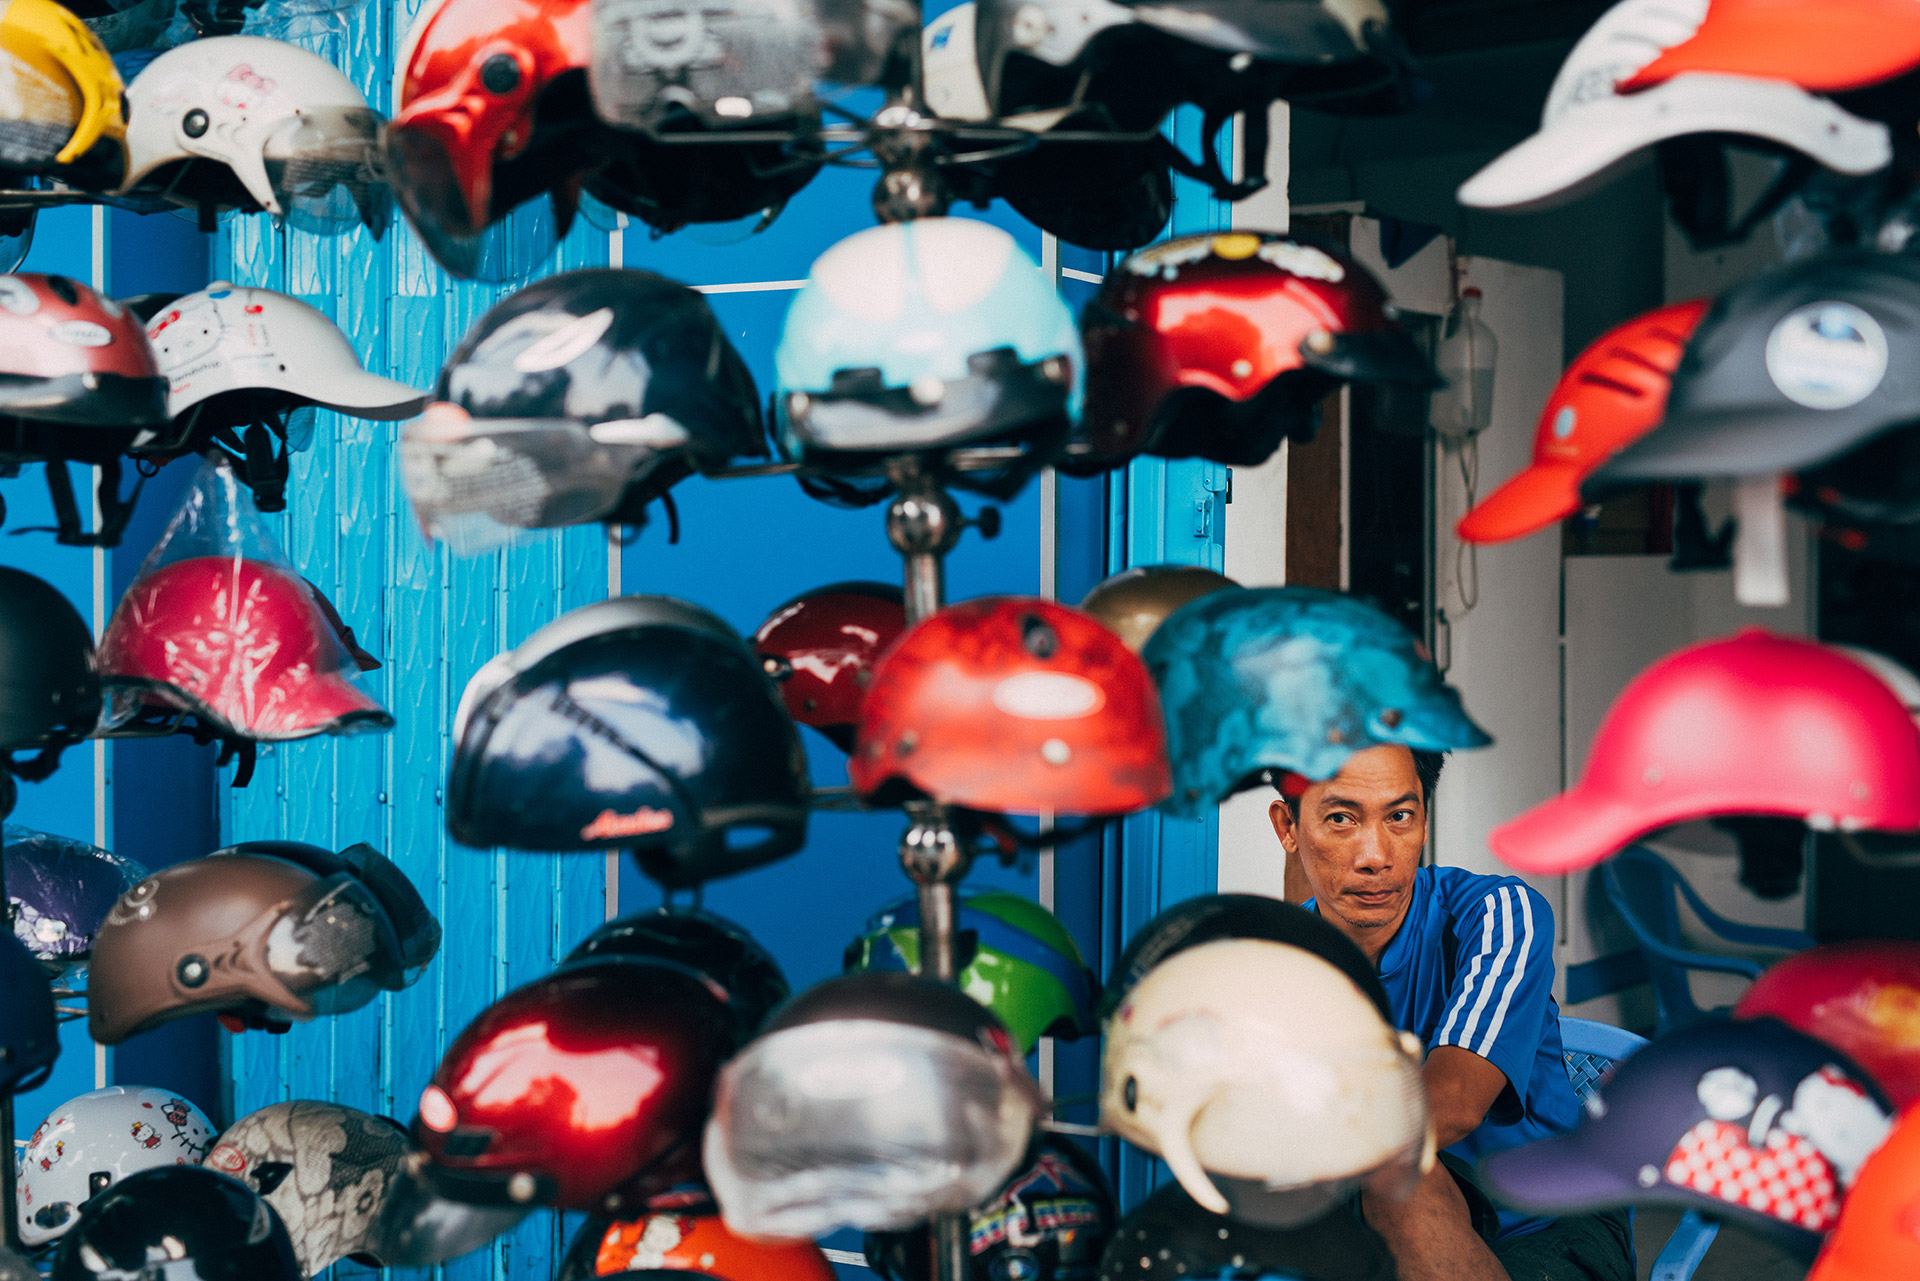 Helmet seller Saigon by DOMINIK